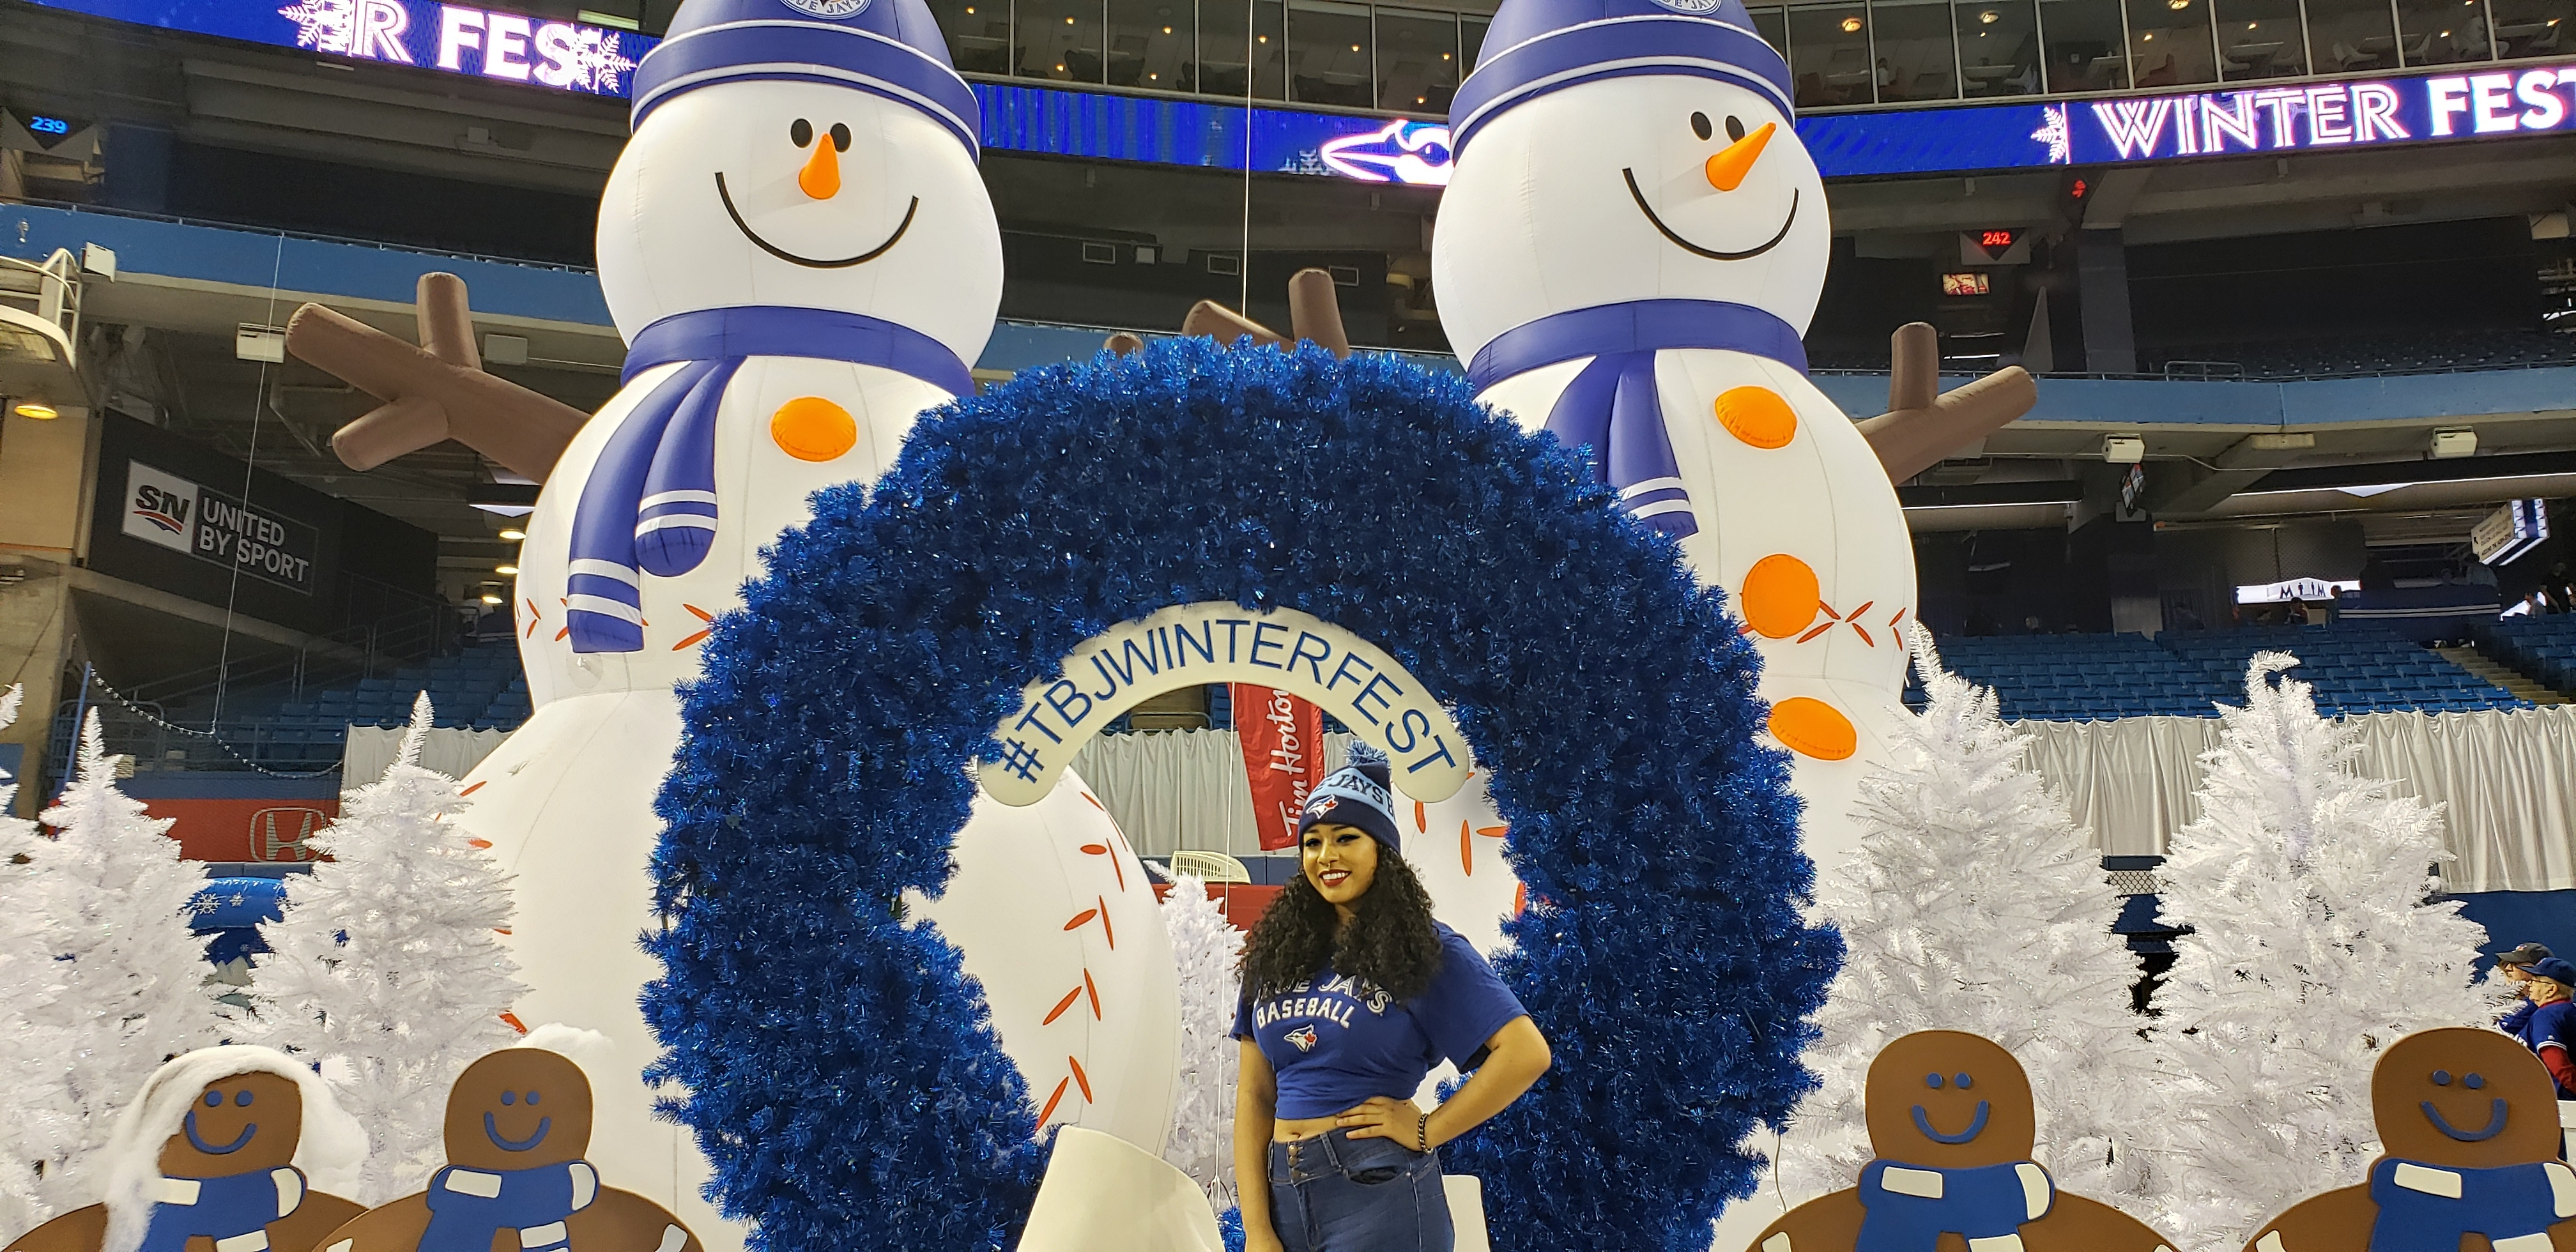 The Toronto Blue Jays Winter Fest: An Event To Remember